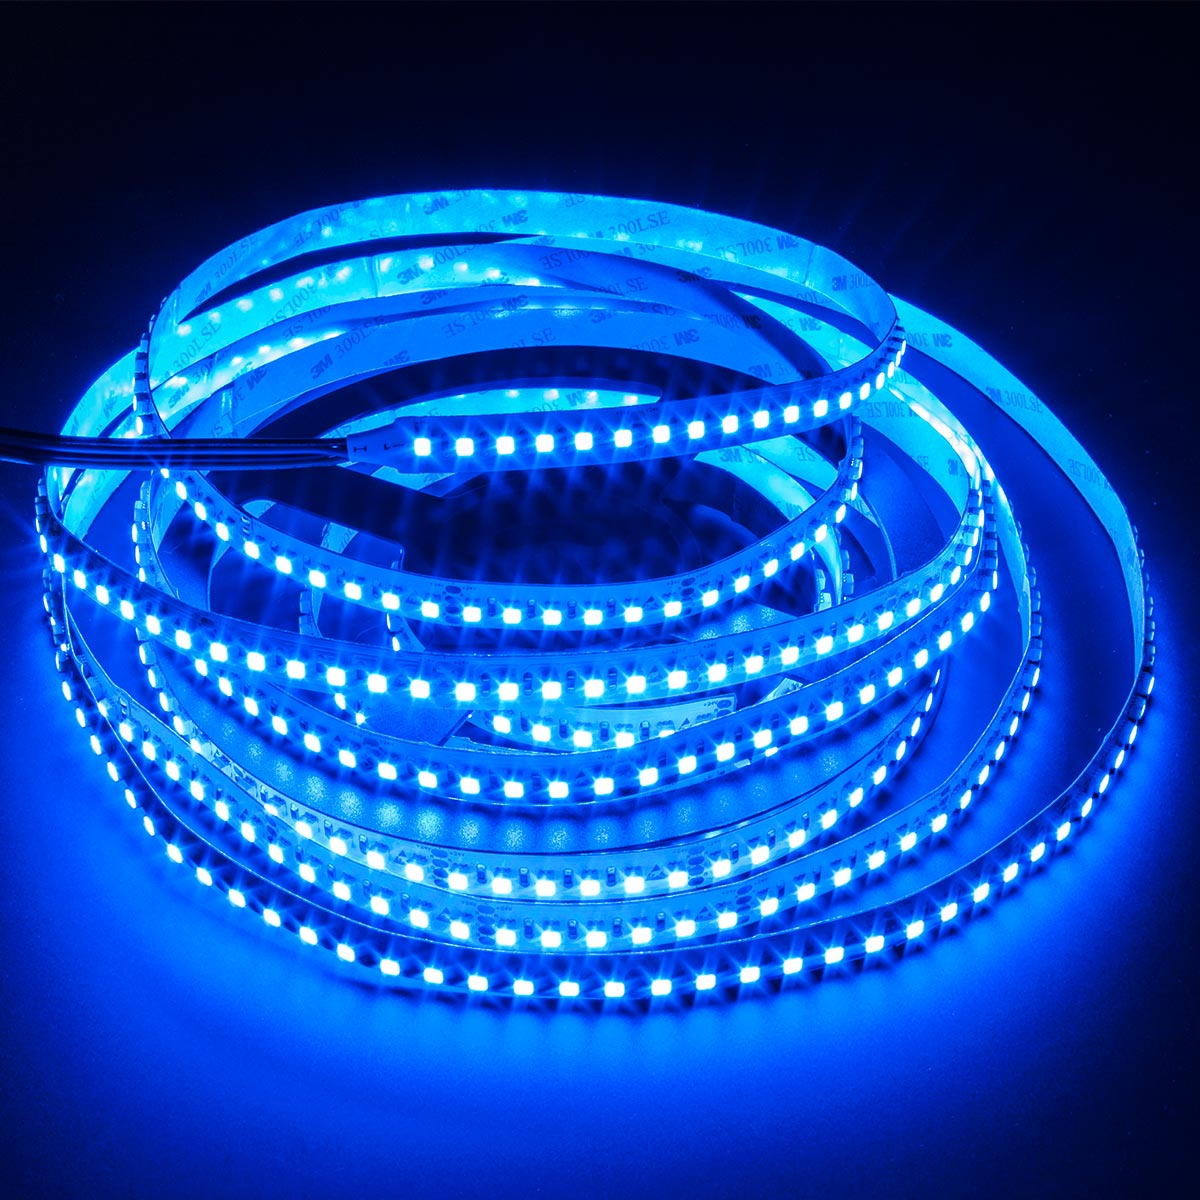 color changing rgb 3535 150w led strip light. Black Bedroom Furniture Sets. Home Design Ideas